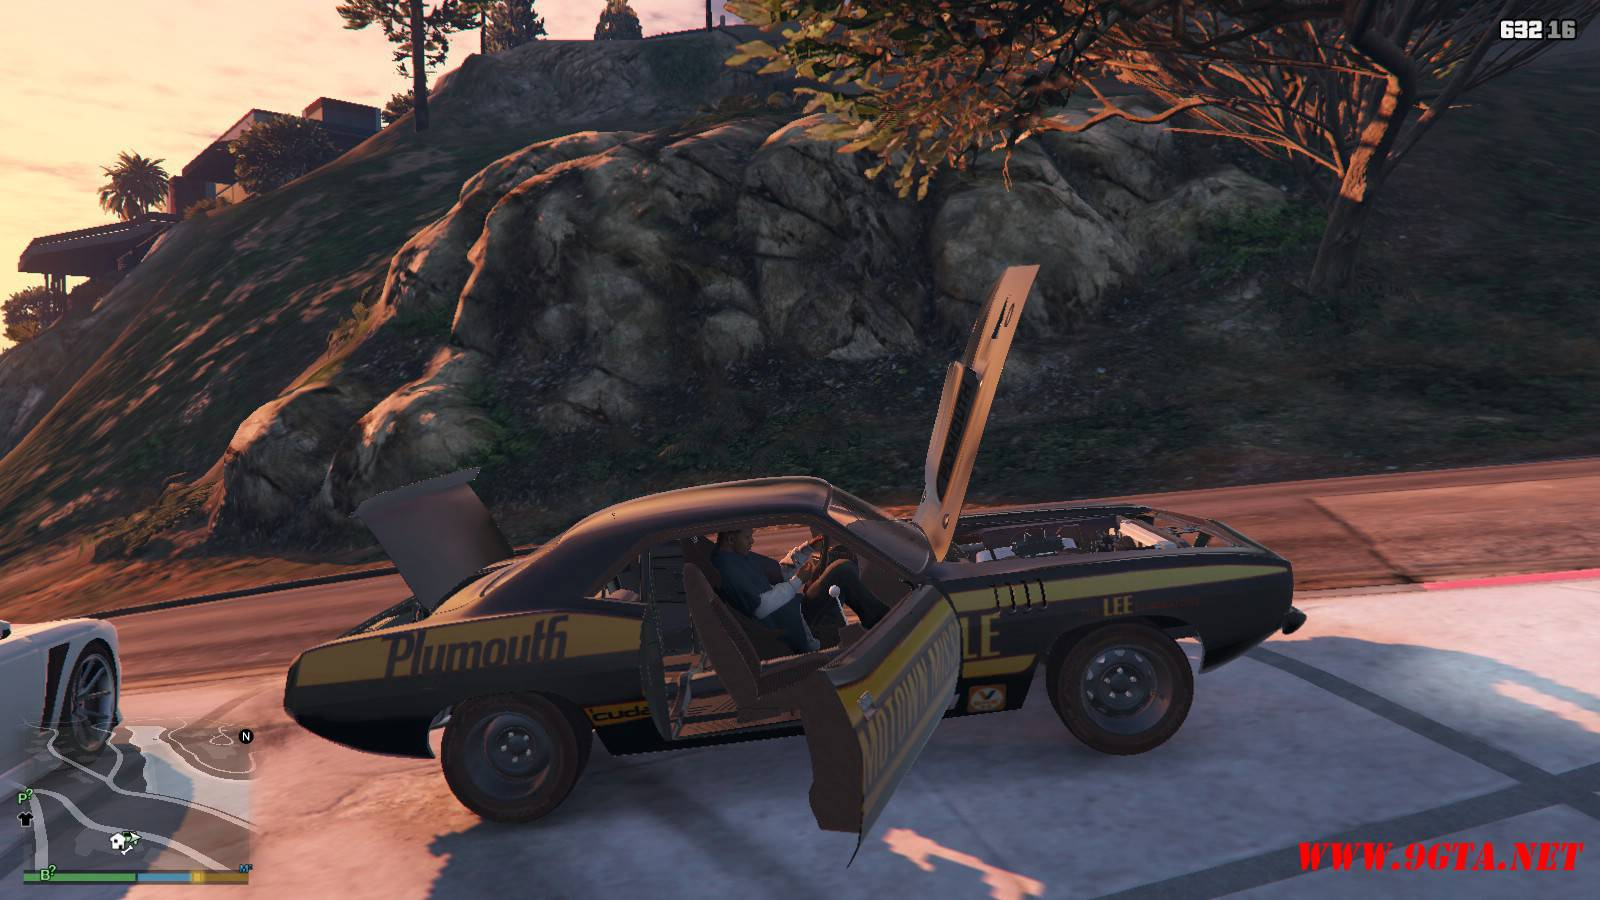 Plymouth Kuda Beck Customs Mod For GTA5 (16)